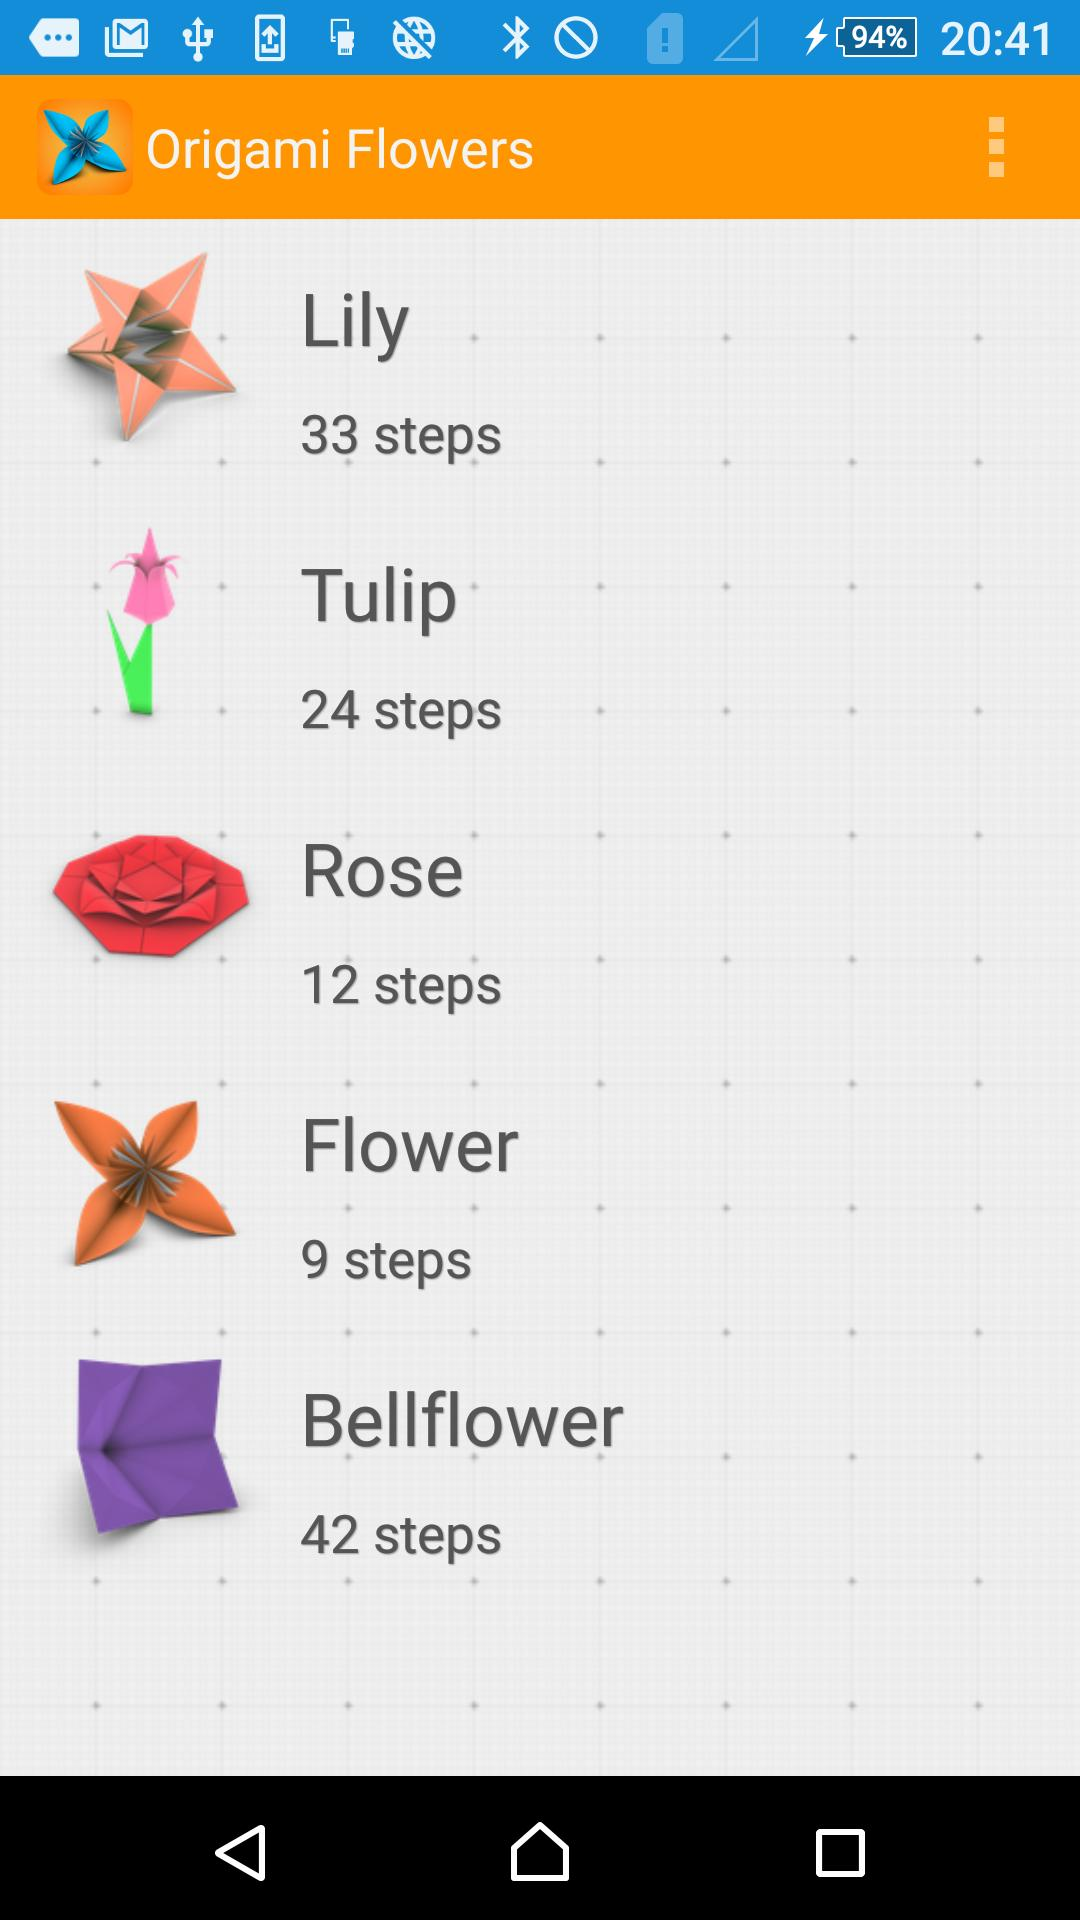 Origami Flower Instructions 3d For Android Apk Download